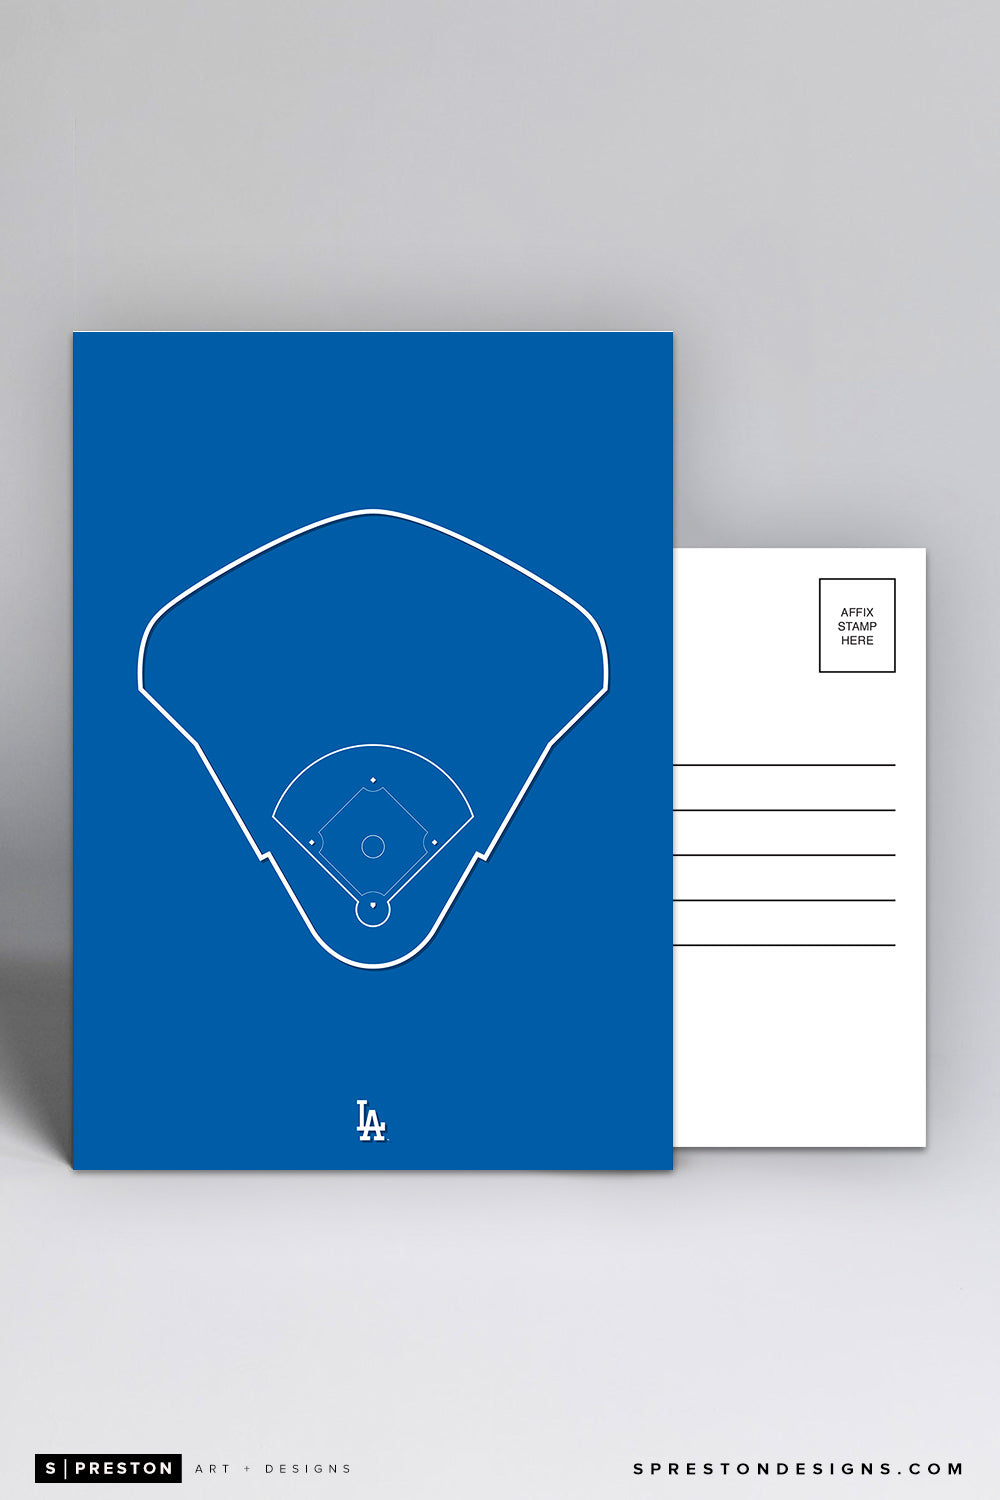 Dodger Stadium - Outline Ballparks Postcard Los Angeles Dodgers - S. Preston